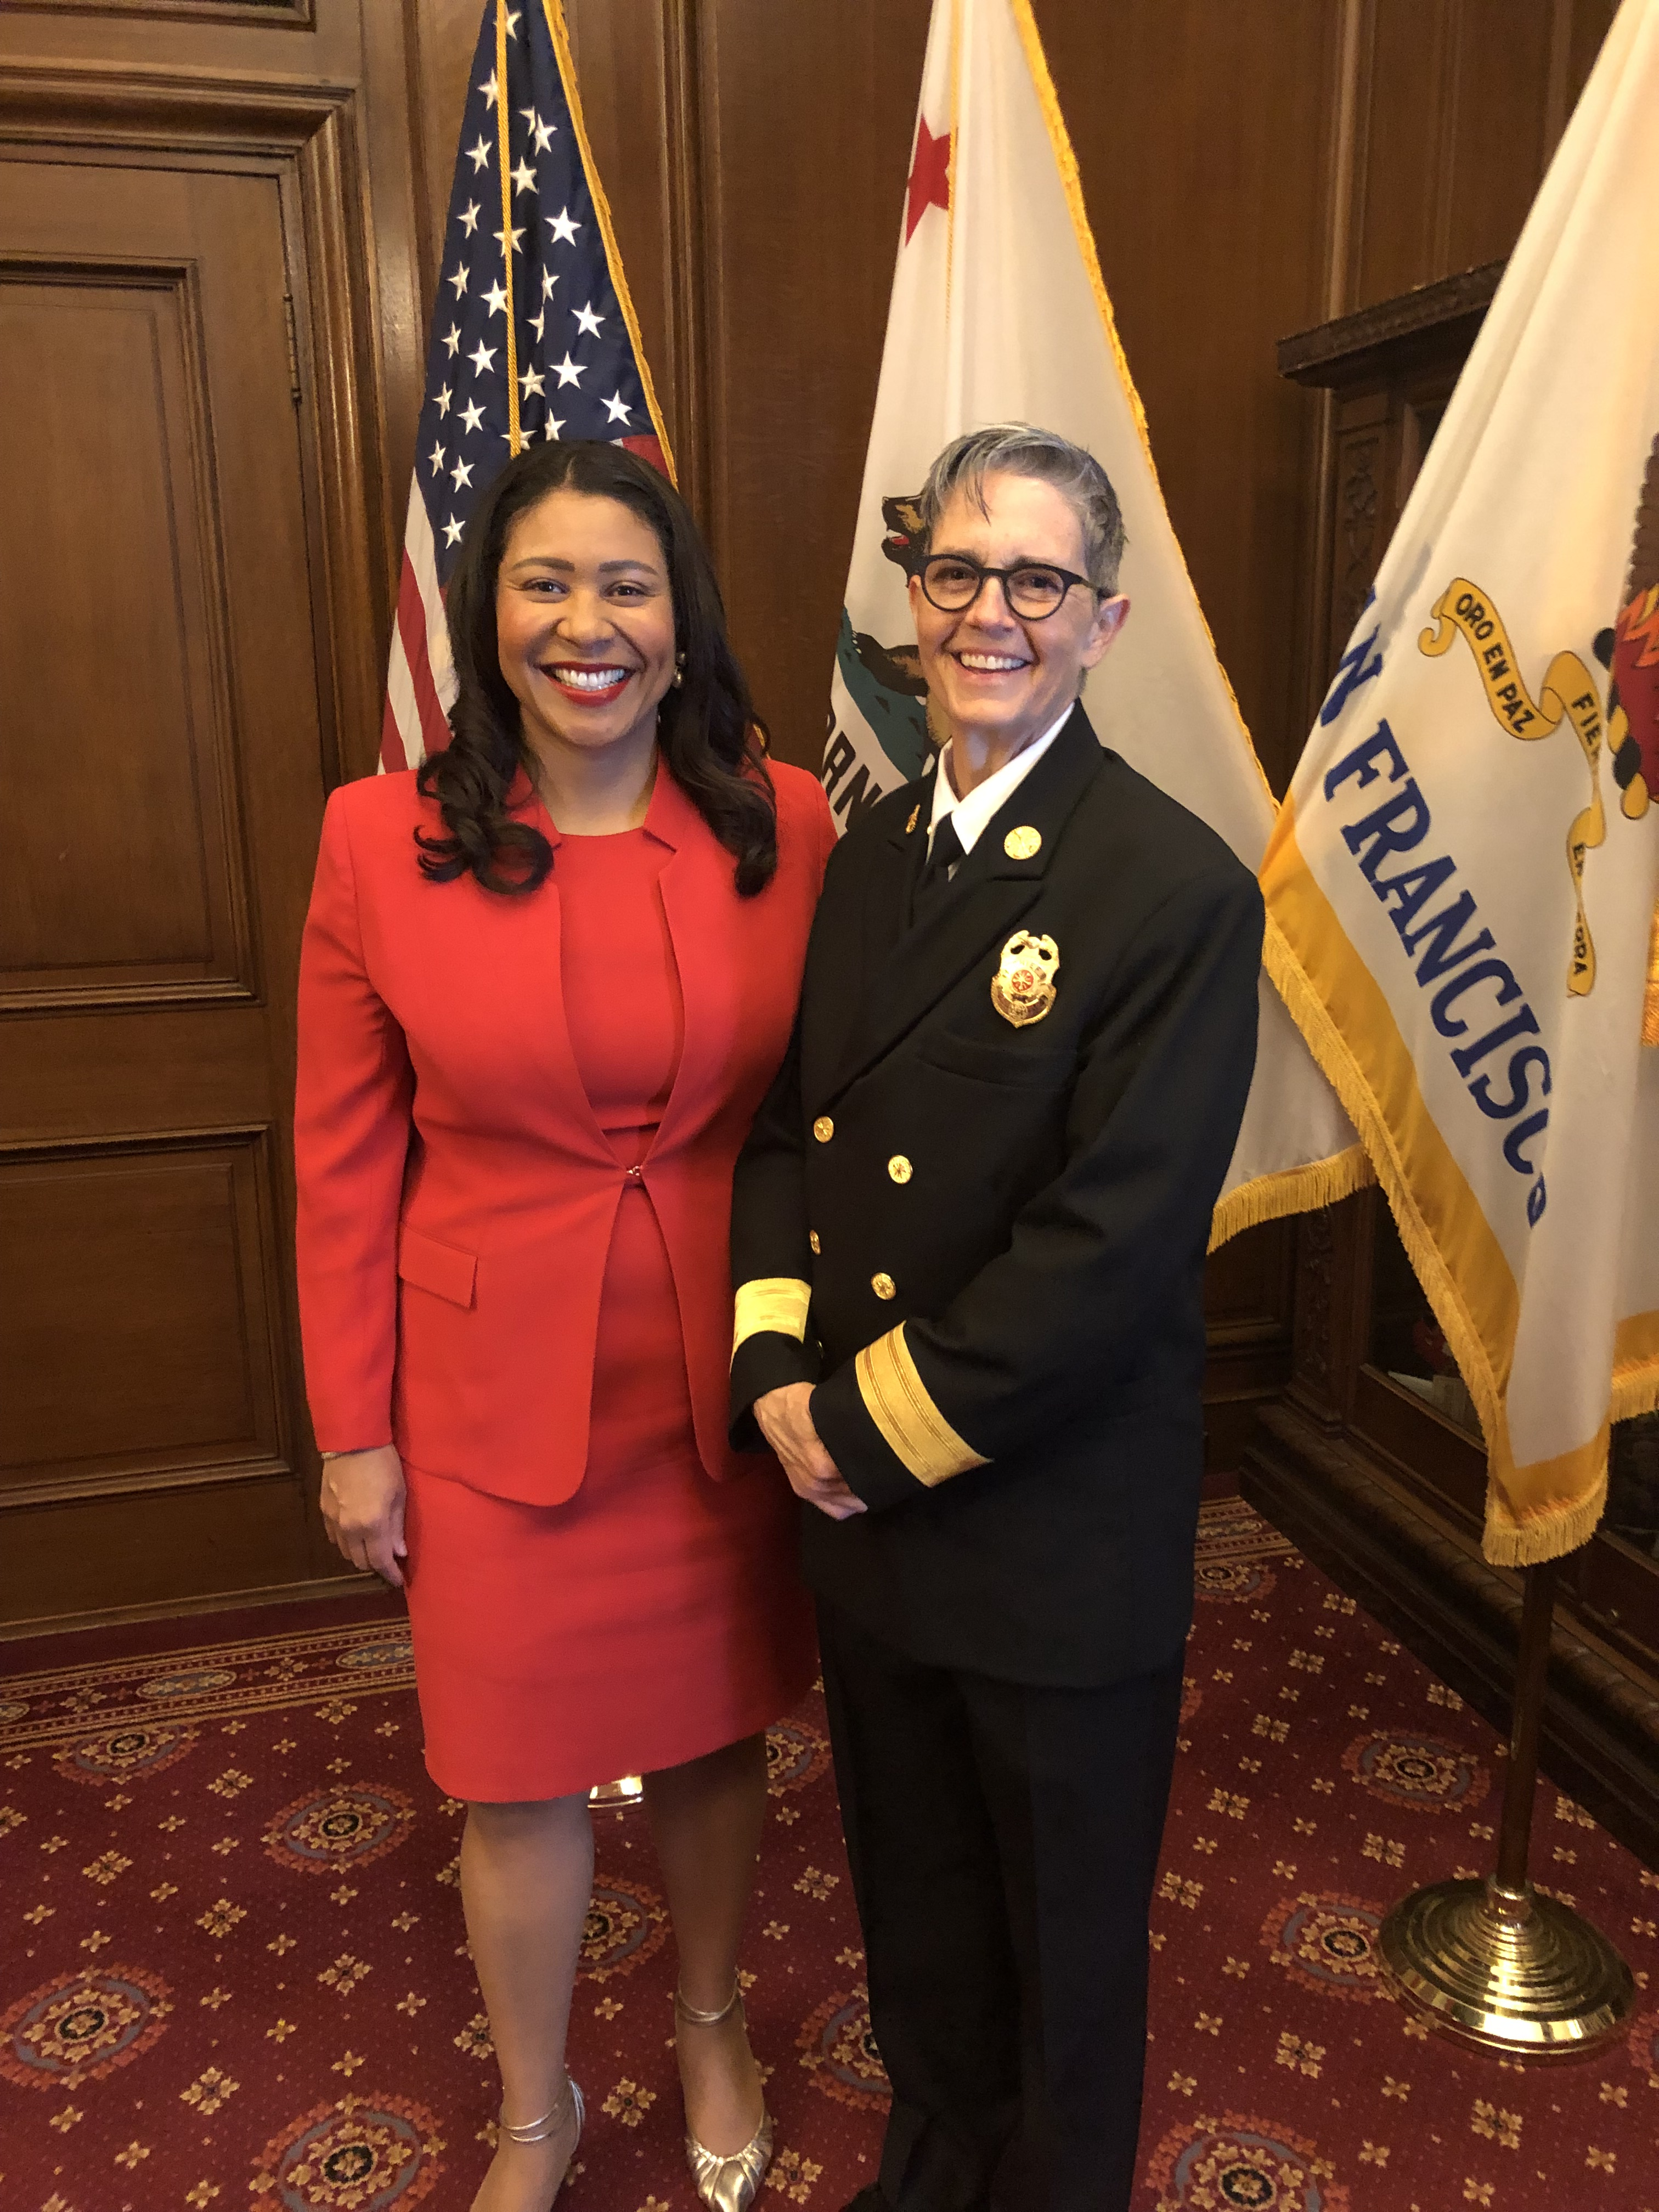 Fire Chief Swearing In